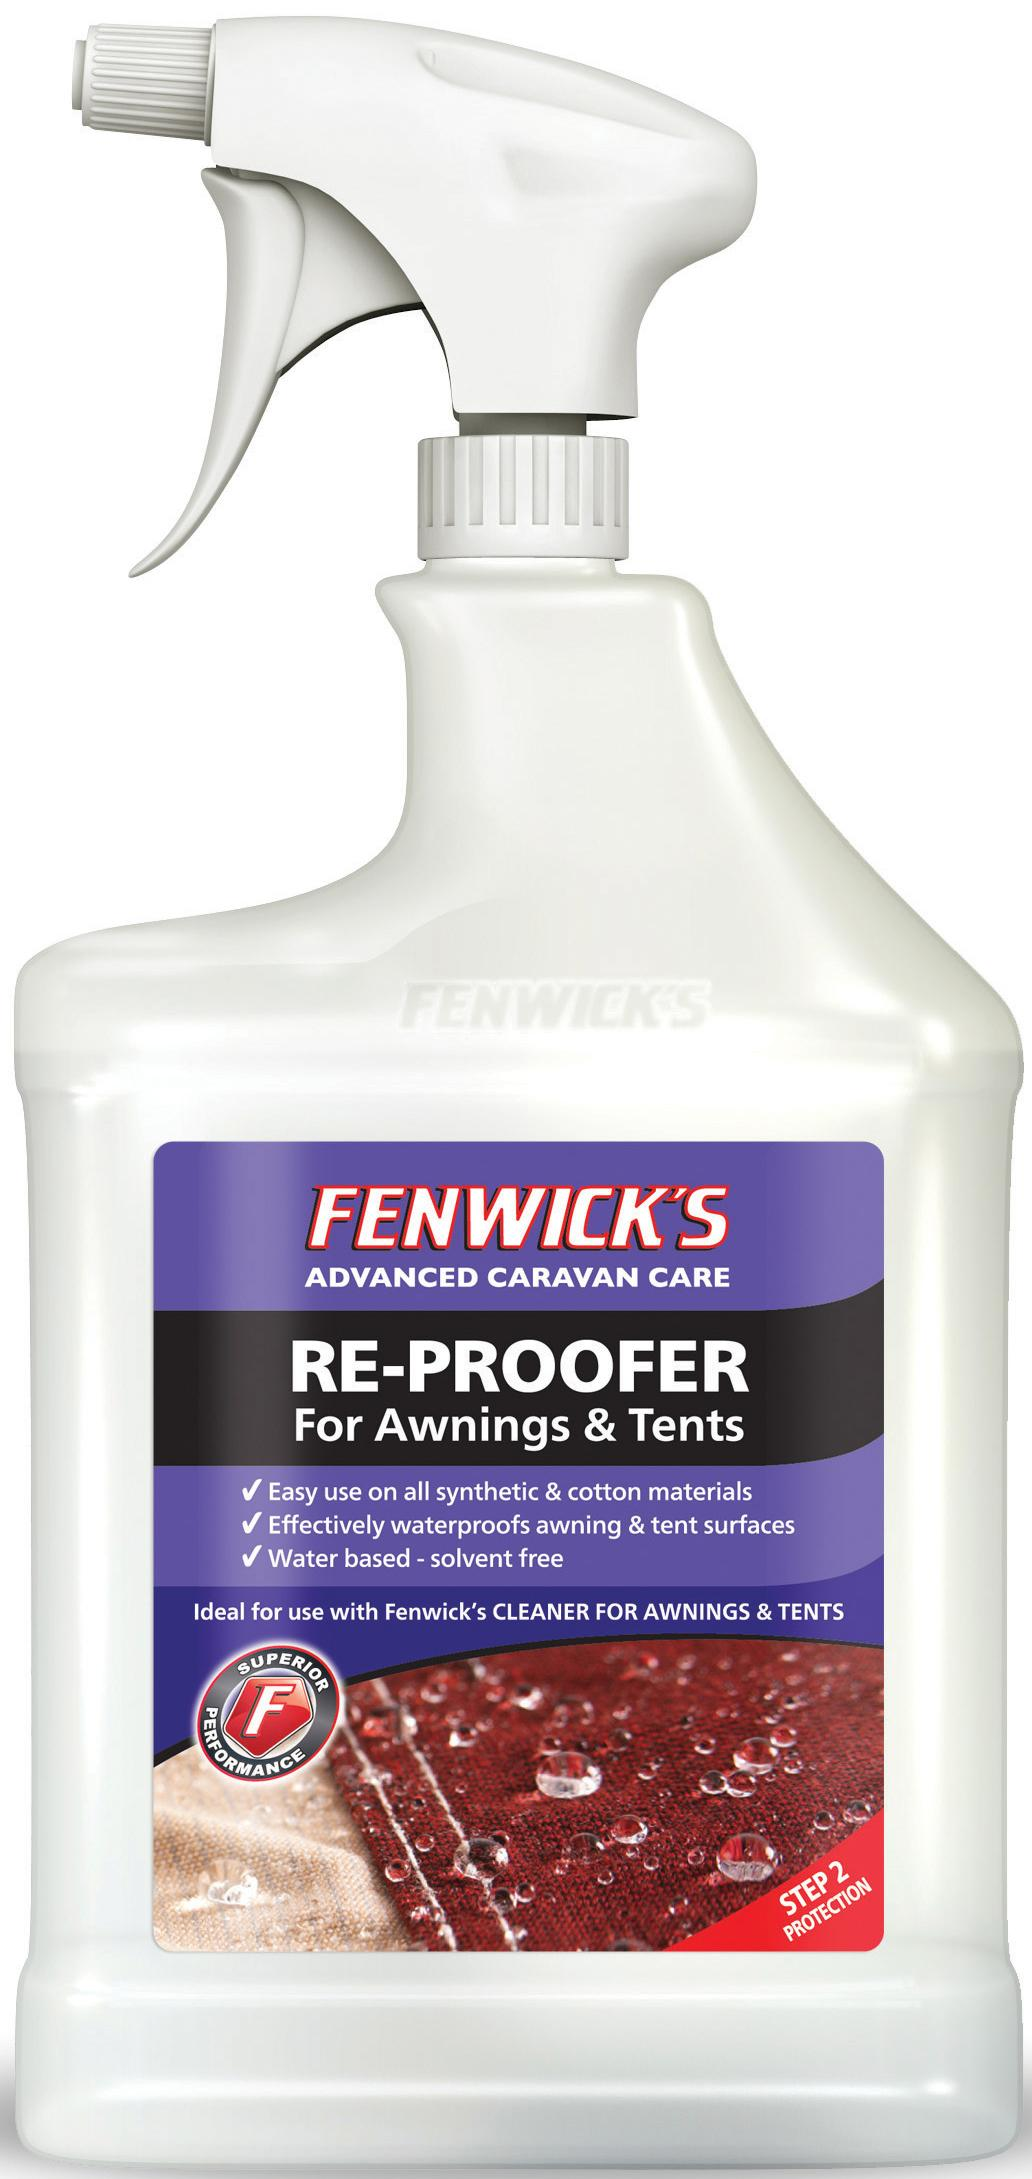 Fenwicks 1 Litre Awning Re-Proofer lowest price